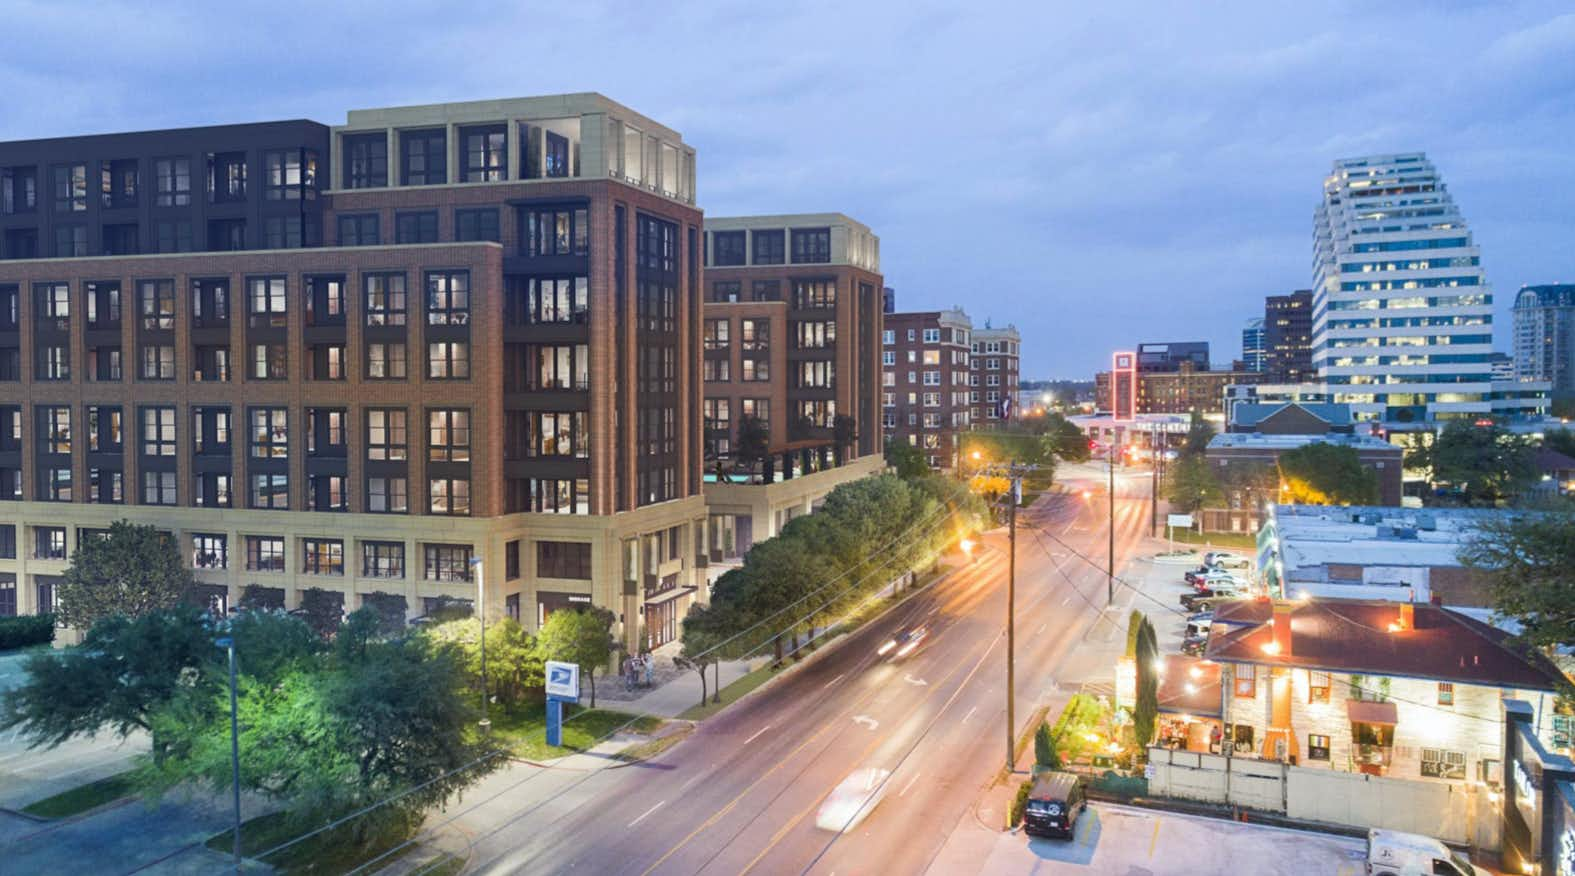 New building would be next door to Dallas' landmark Melrose Hotel